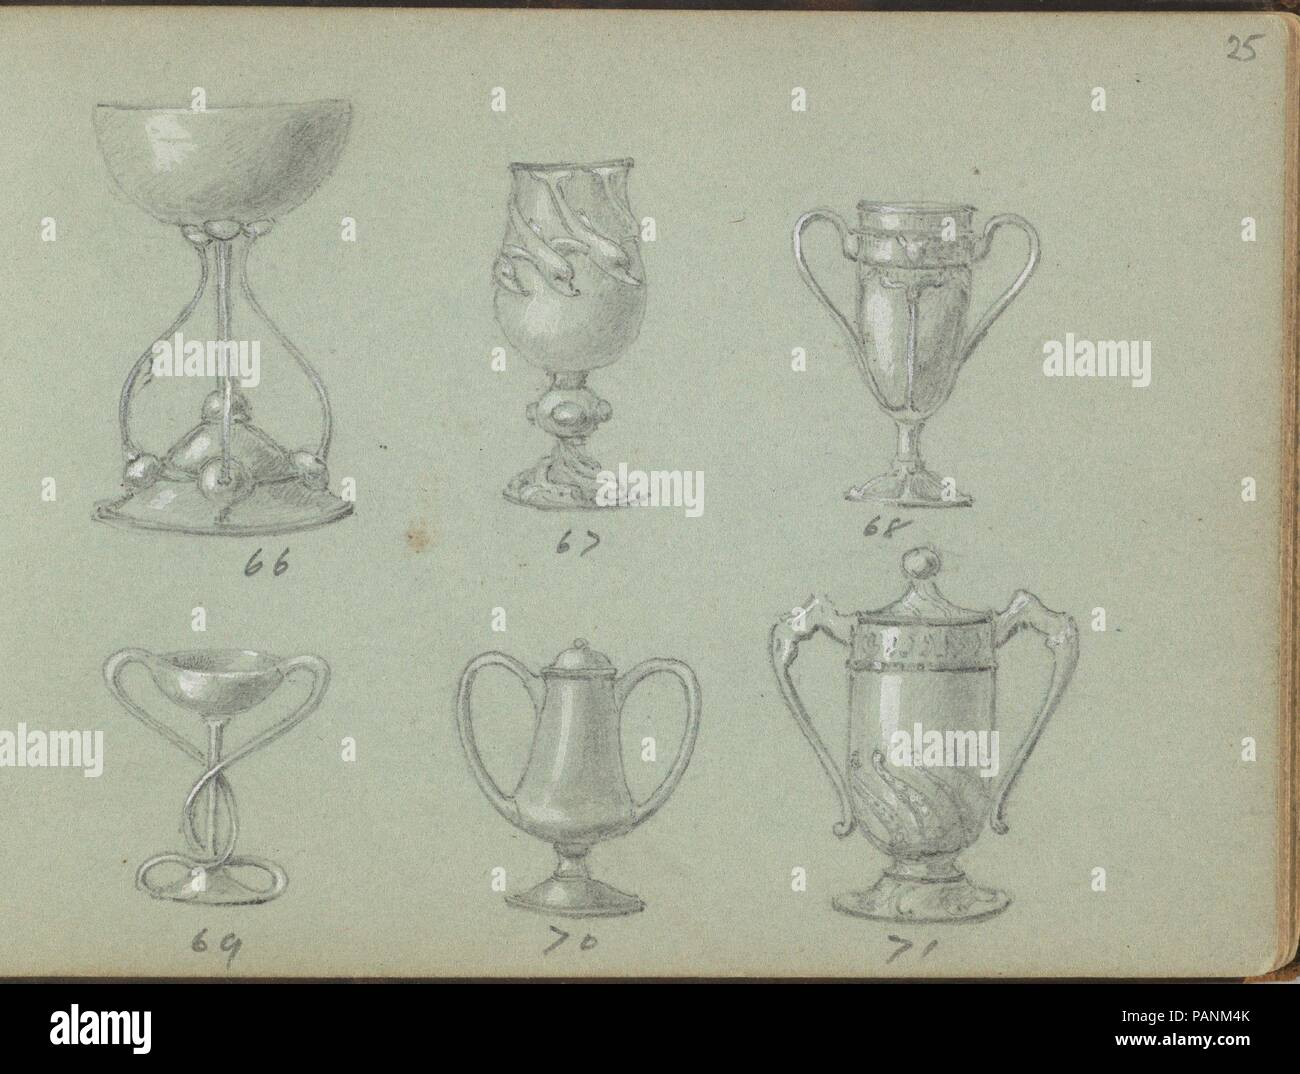 Six Designs for Drinking Vessels. Artist: Edgar Gilstrap Simpson (British, 1867-1945 (presumed)). Dimensions: sheet: 3 1/2 x 5 in. (8.9 x 12.7 cm). Date: 1899.  Six designs for drinking vessels, presented in two rows. The upper row shows three different designs for cups, of which the second is decorated by dolphins. The lower rwo shows three designs for cups with two ears and the last two also have a lid. Museum: Metropolitan Museum of Art, New York, USA. - Stock Image